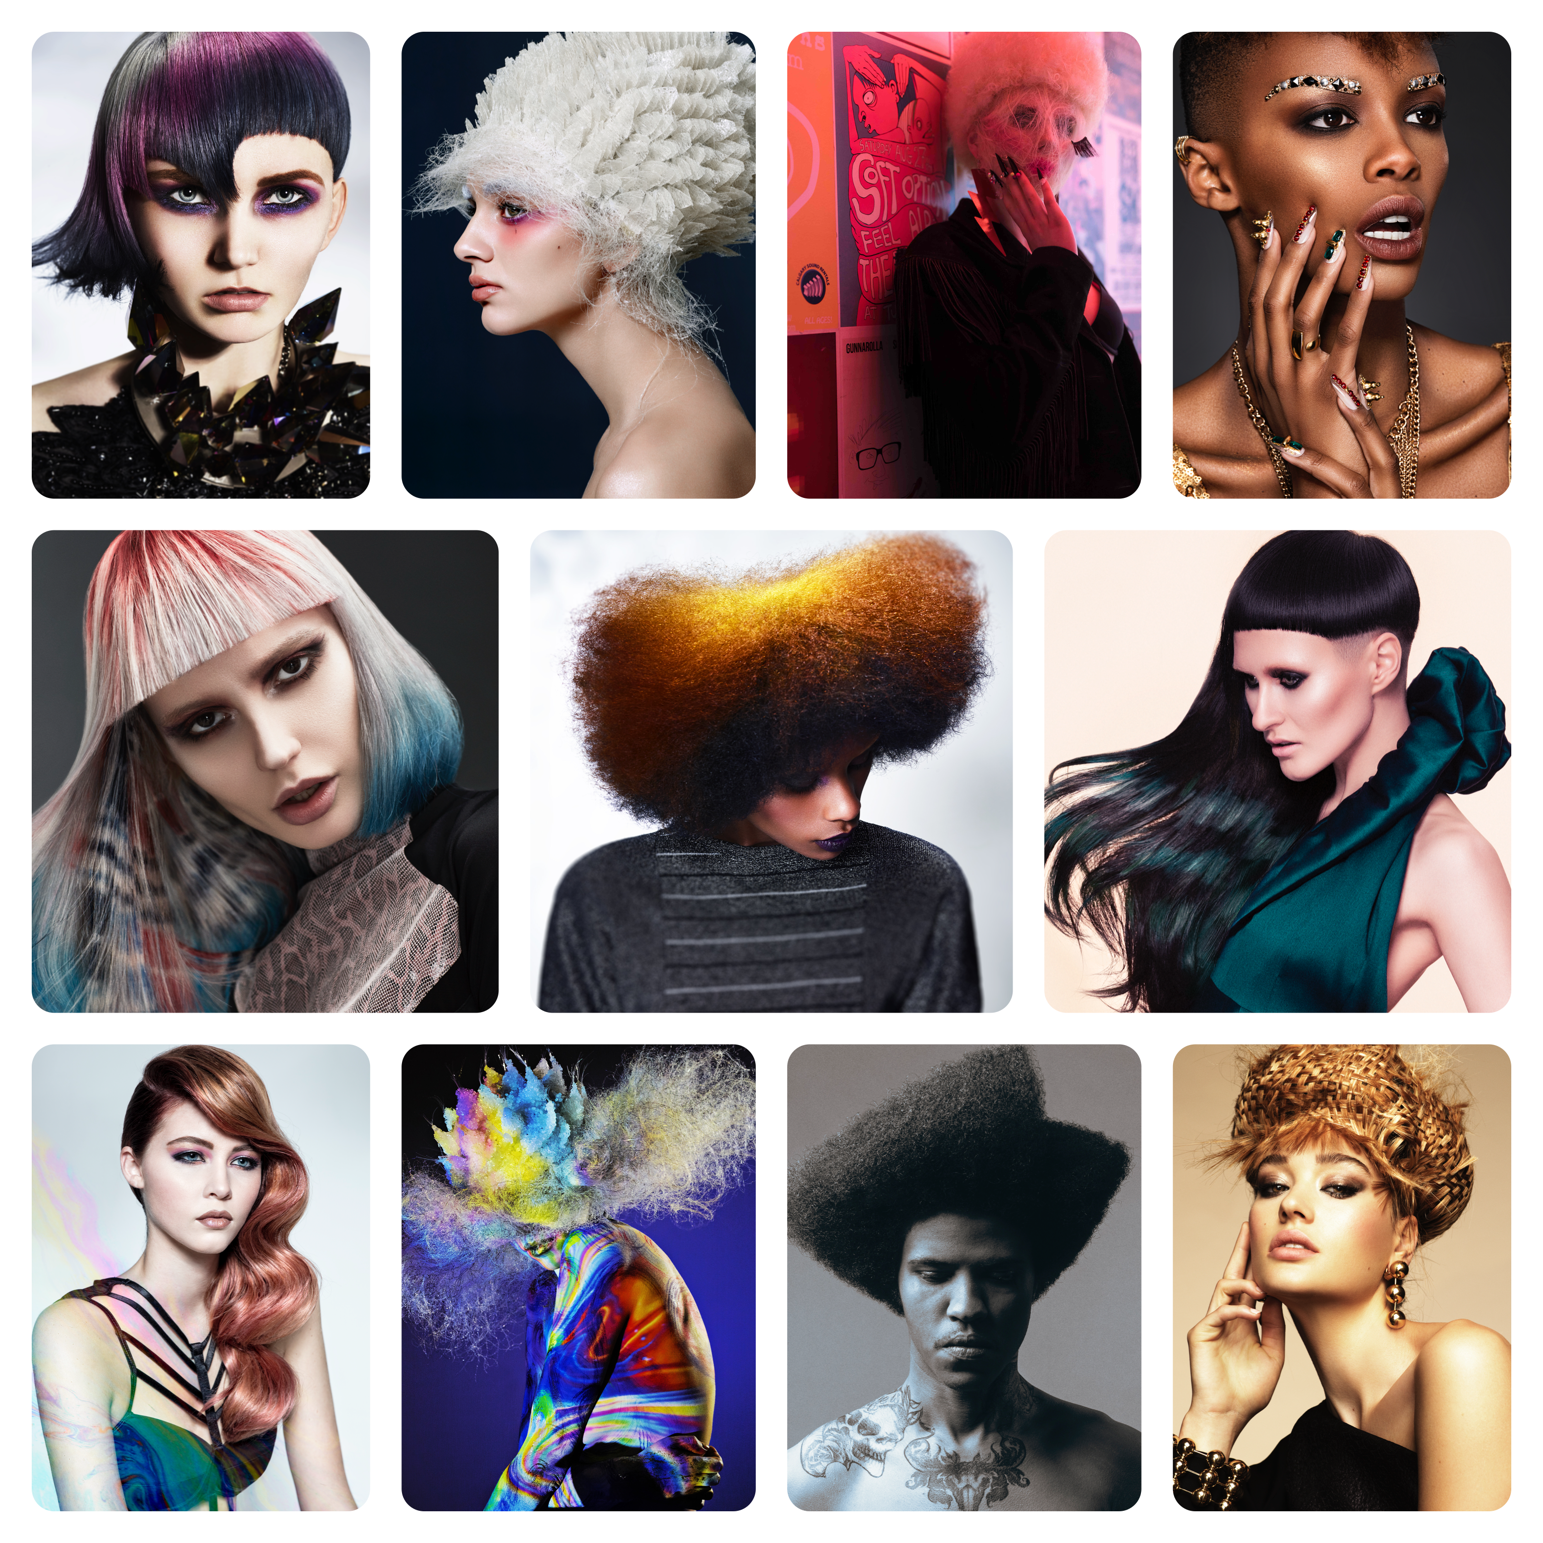 Announcing the 2018 NAHA Finalists!